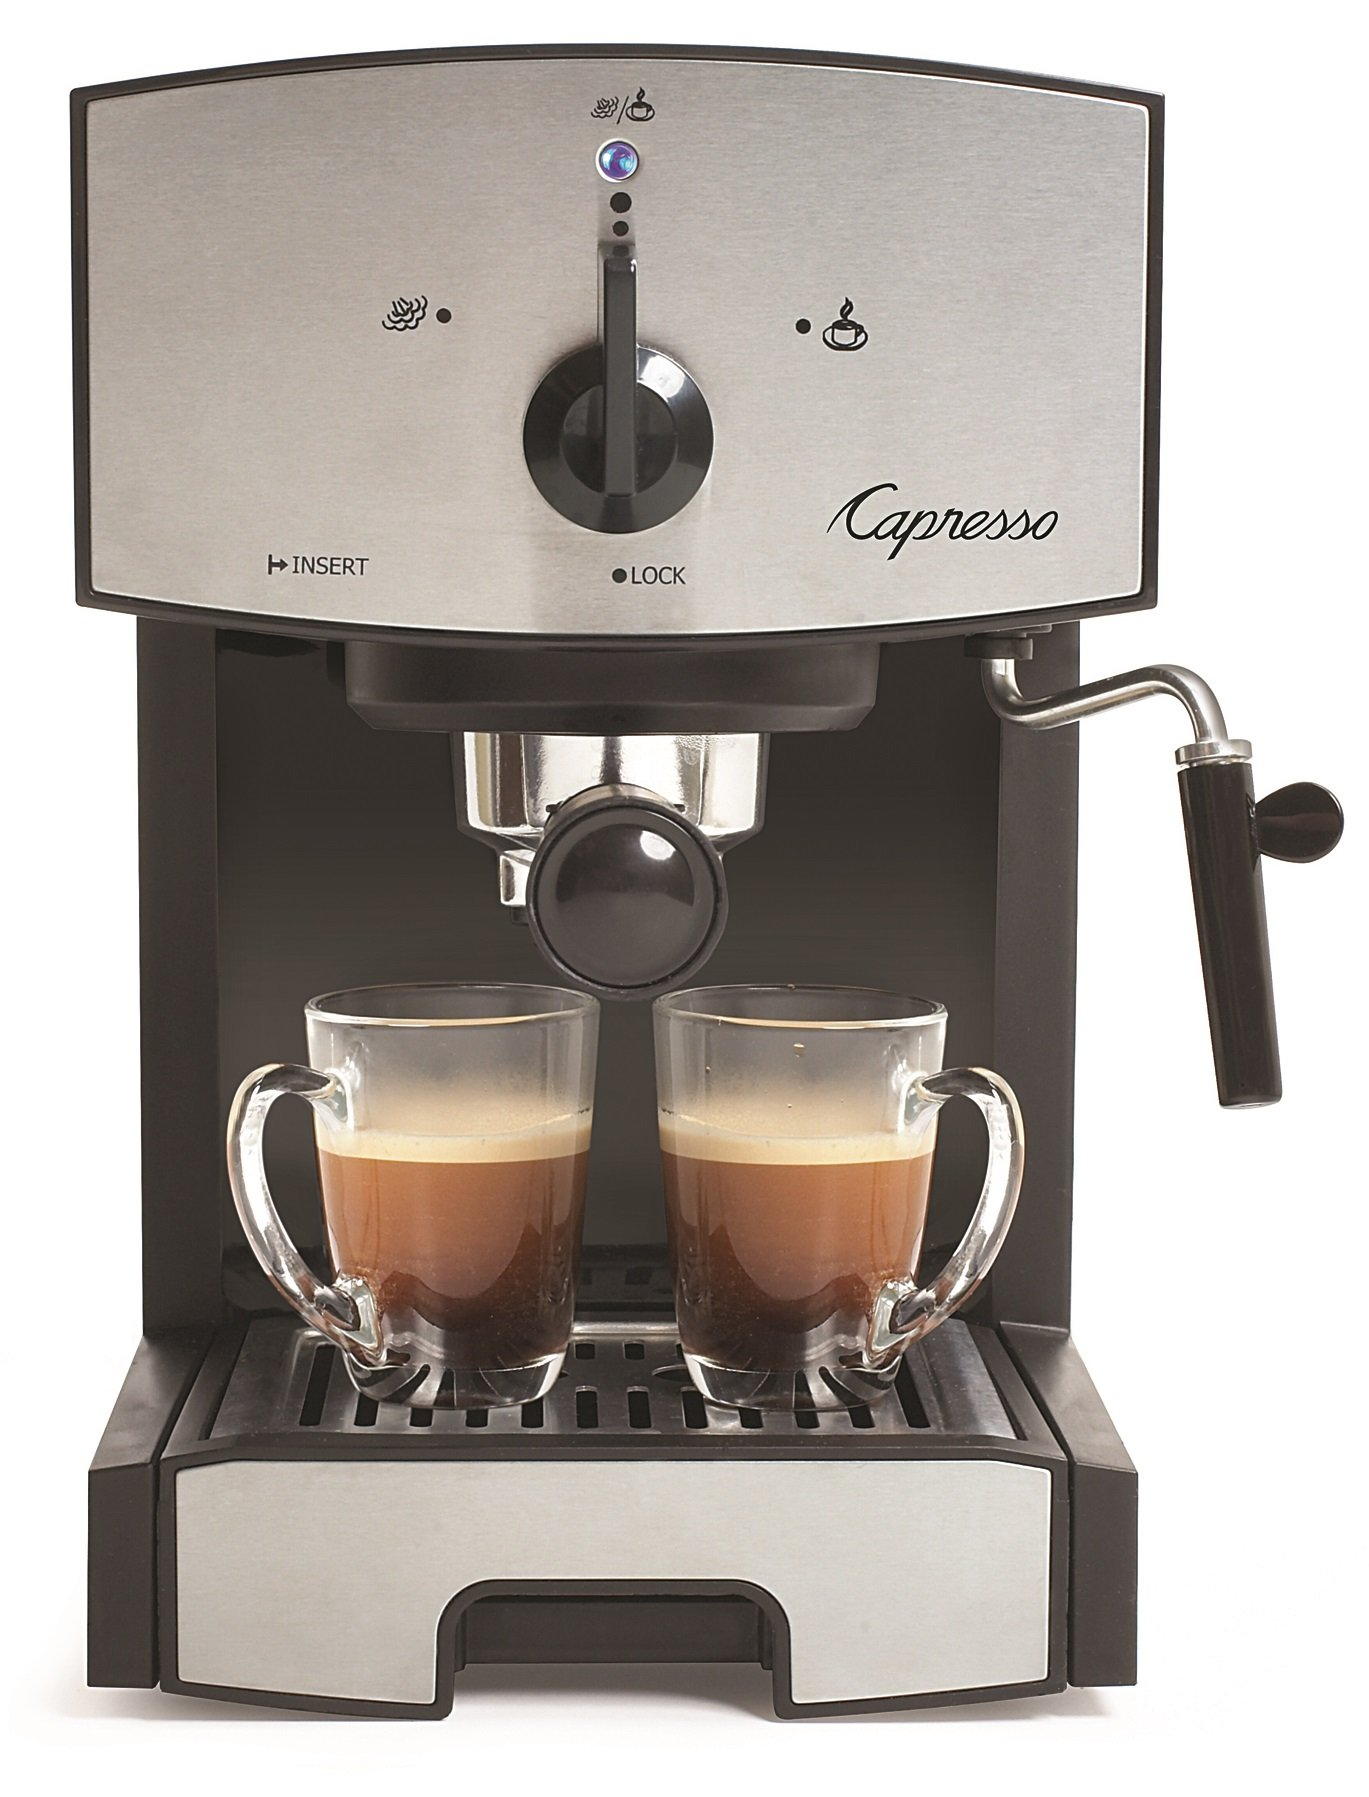 Capresso 117.05 Stainless Steel Pump Espresso and Cappuccino Machine EC50, Black/Stainless by Capresso